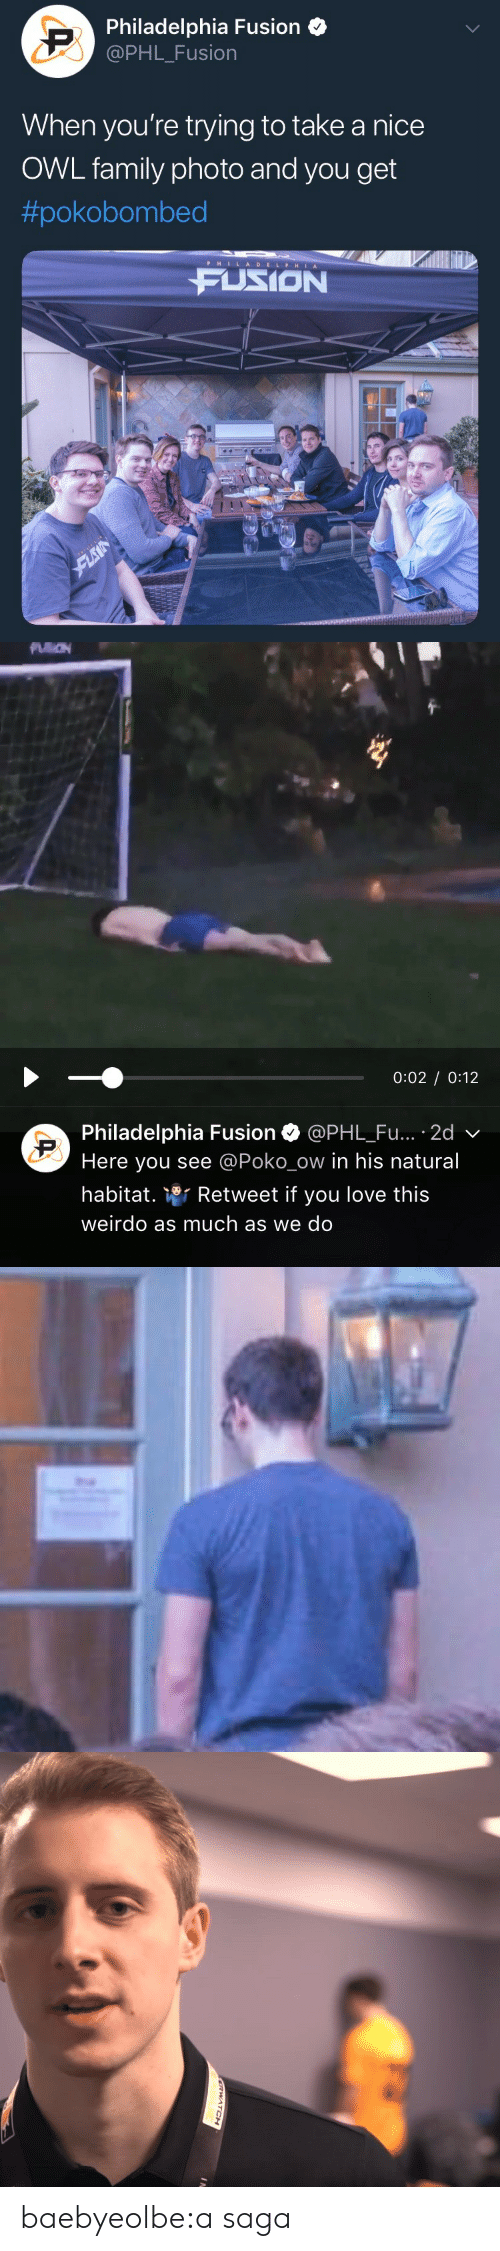 fusion: Philadelphia Fusion  @PHL_Fusion  When you're trying to take a nice  OWL family photo and you get  #pokobombed  P HILADELPHIA  FUSION   0:02 0:12  Philadelphia Fusion Ф @PHL.Fu.. . 2d  Here you see @Poko_ow in his natural  habitat. Retweet if you love this  weirdo as much as we do baebyeolbe:a saga